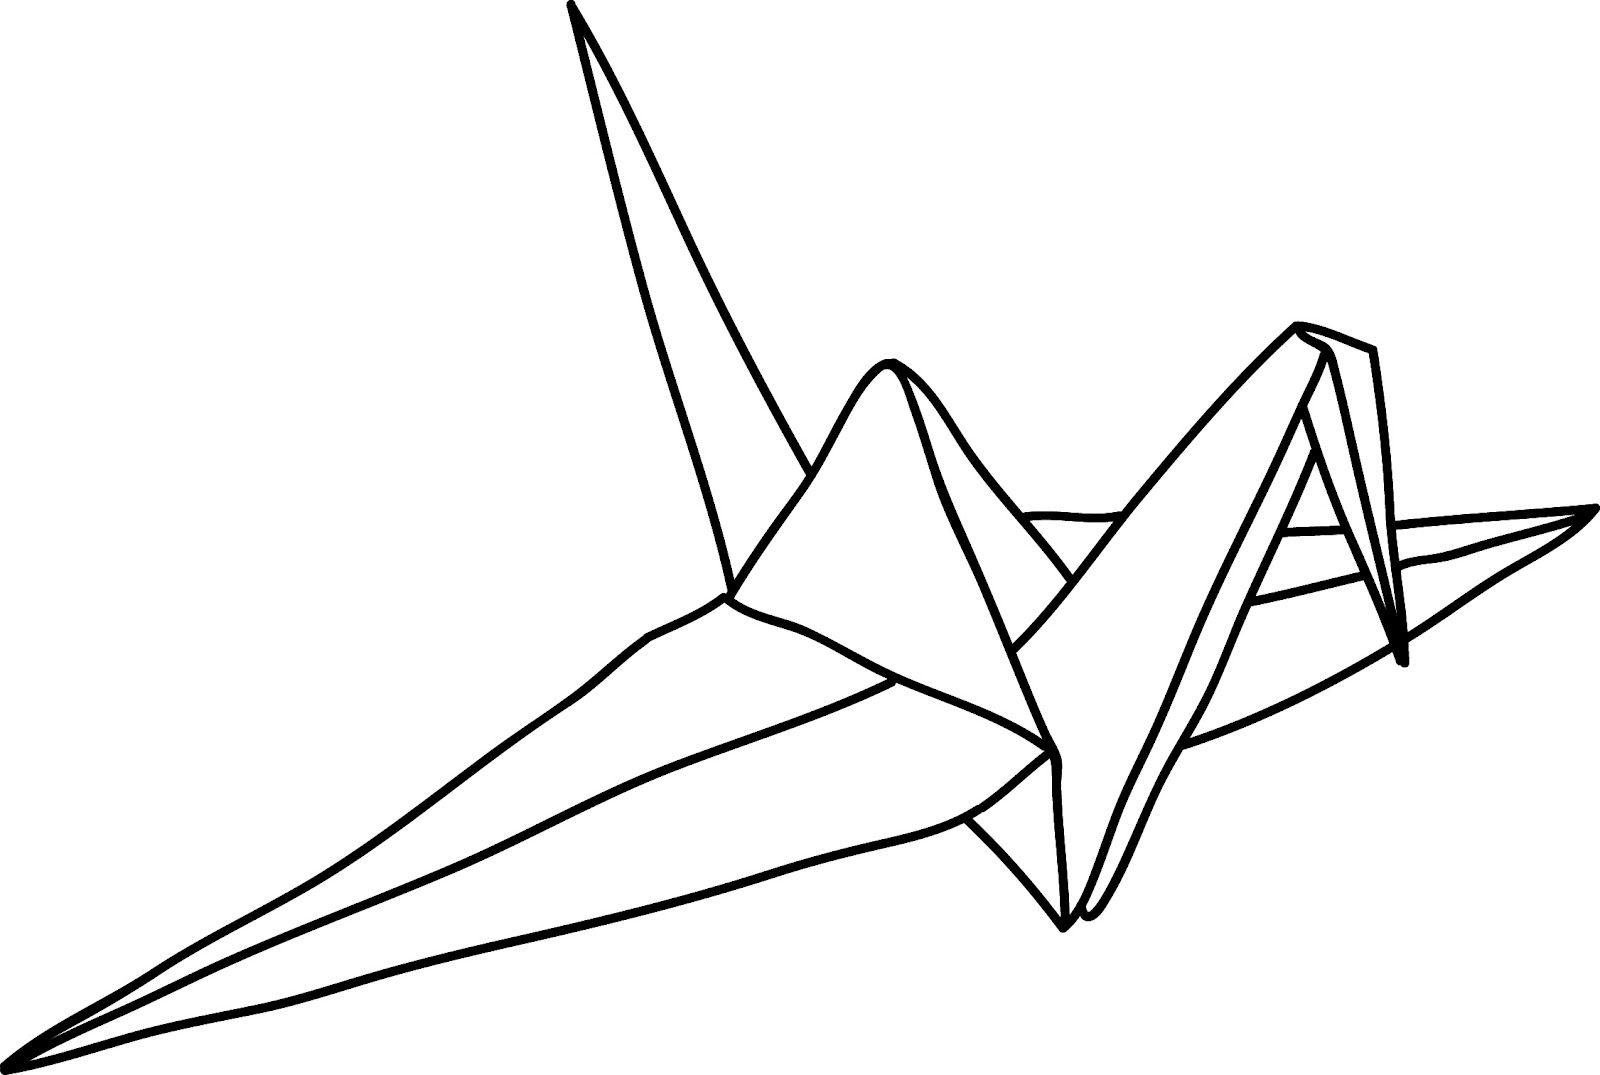 Origami Crane Outline - photo#8